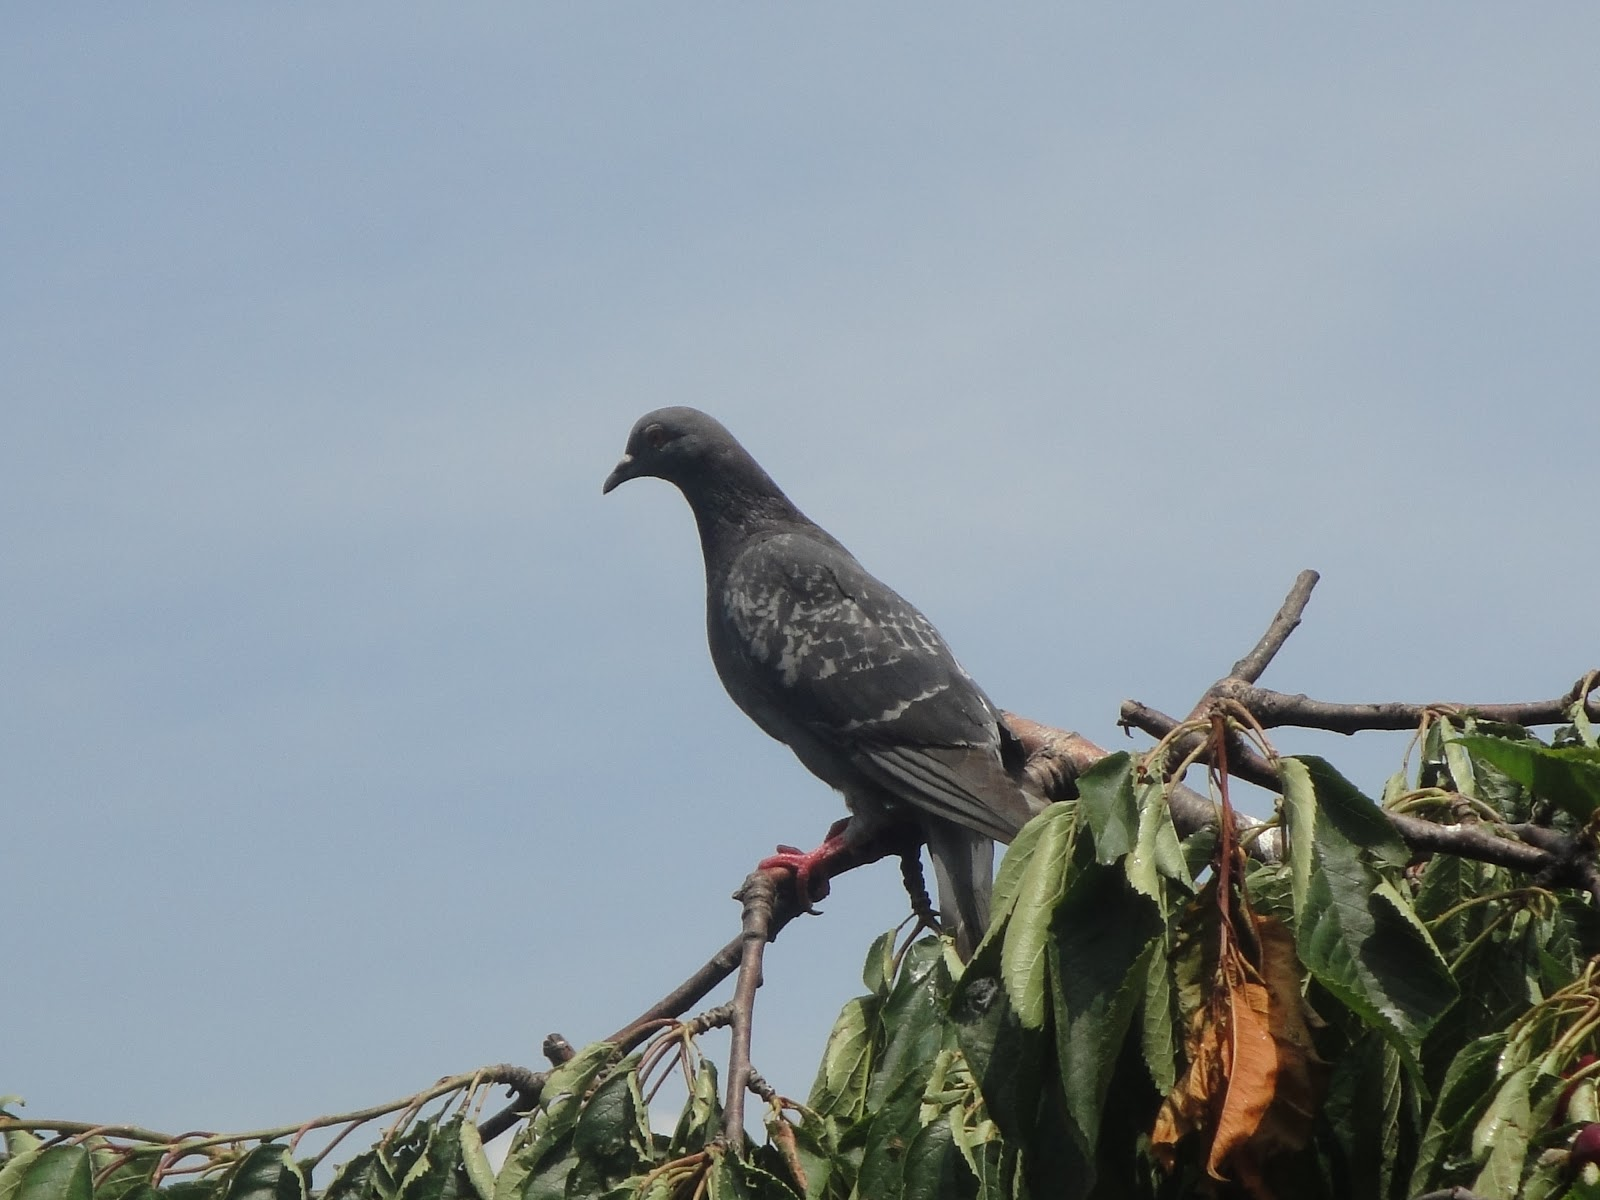 A pigeon sits perched on top of a cherry tree.